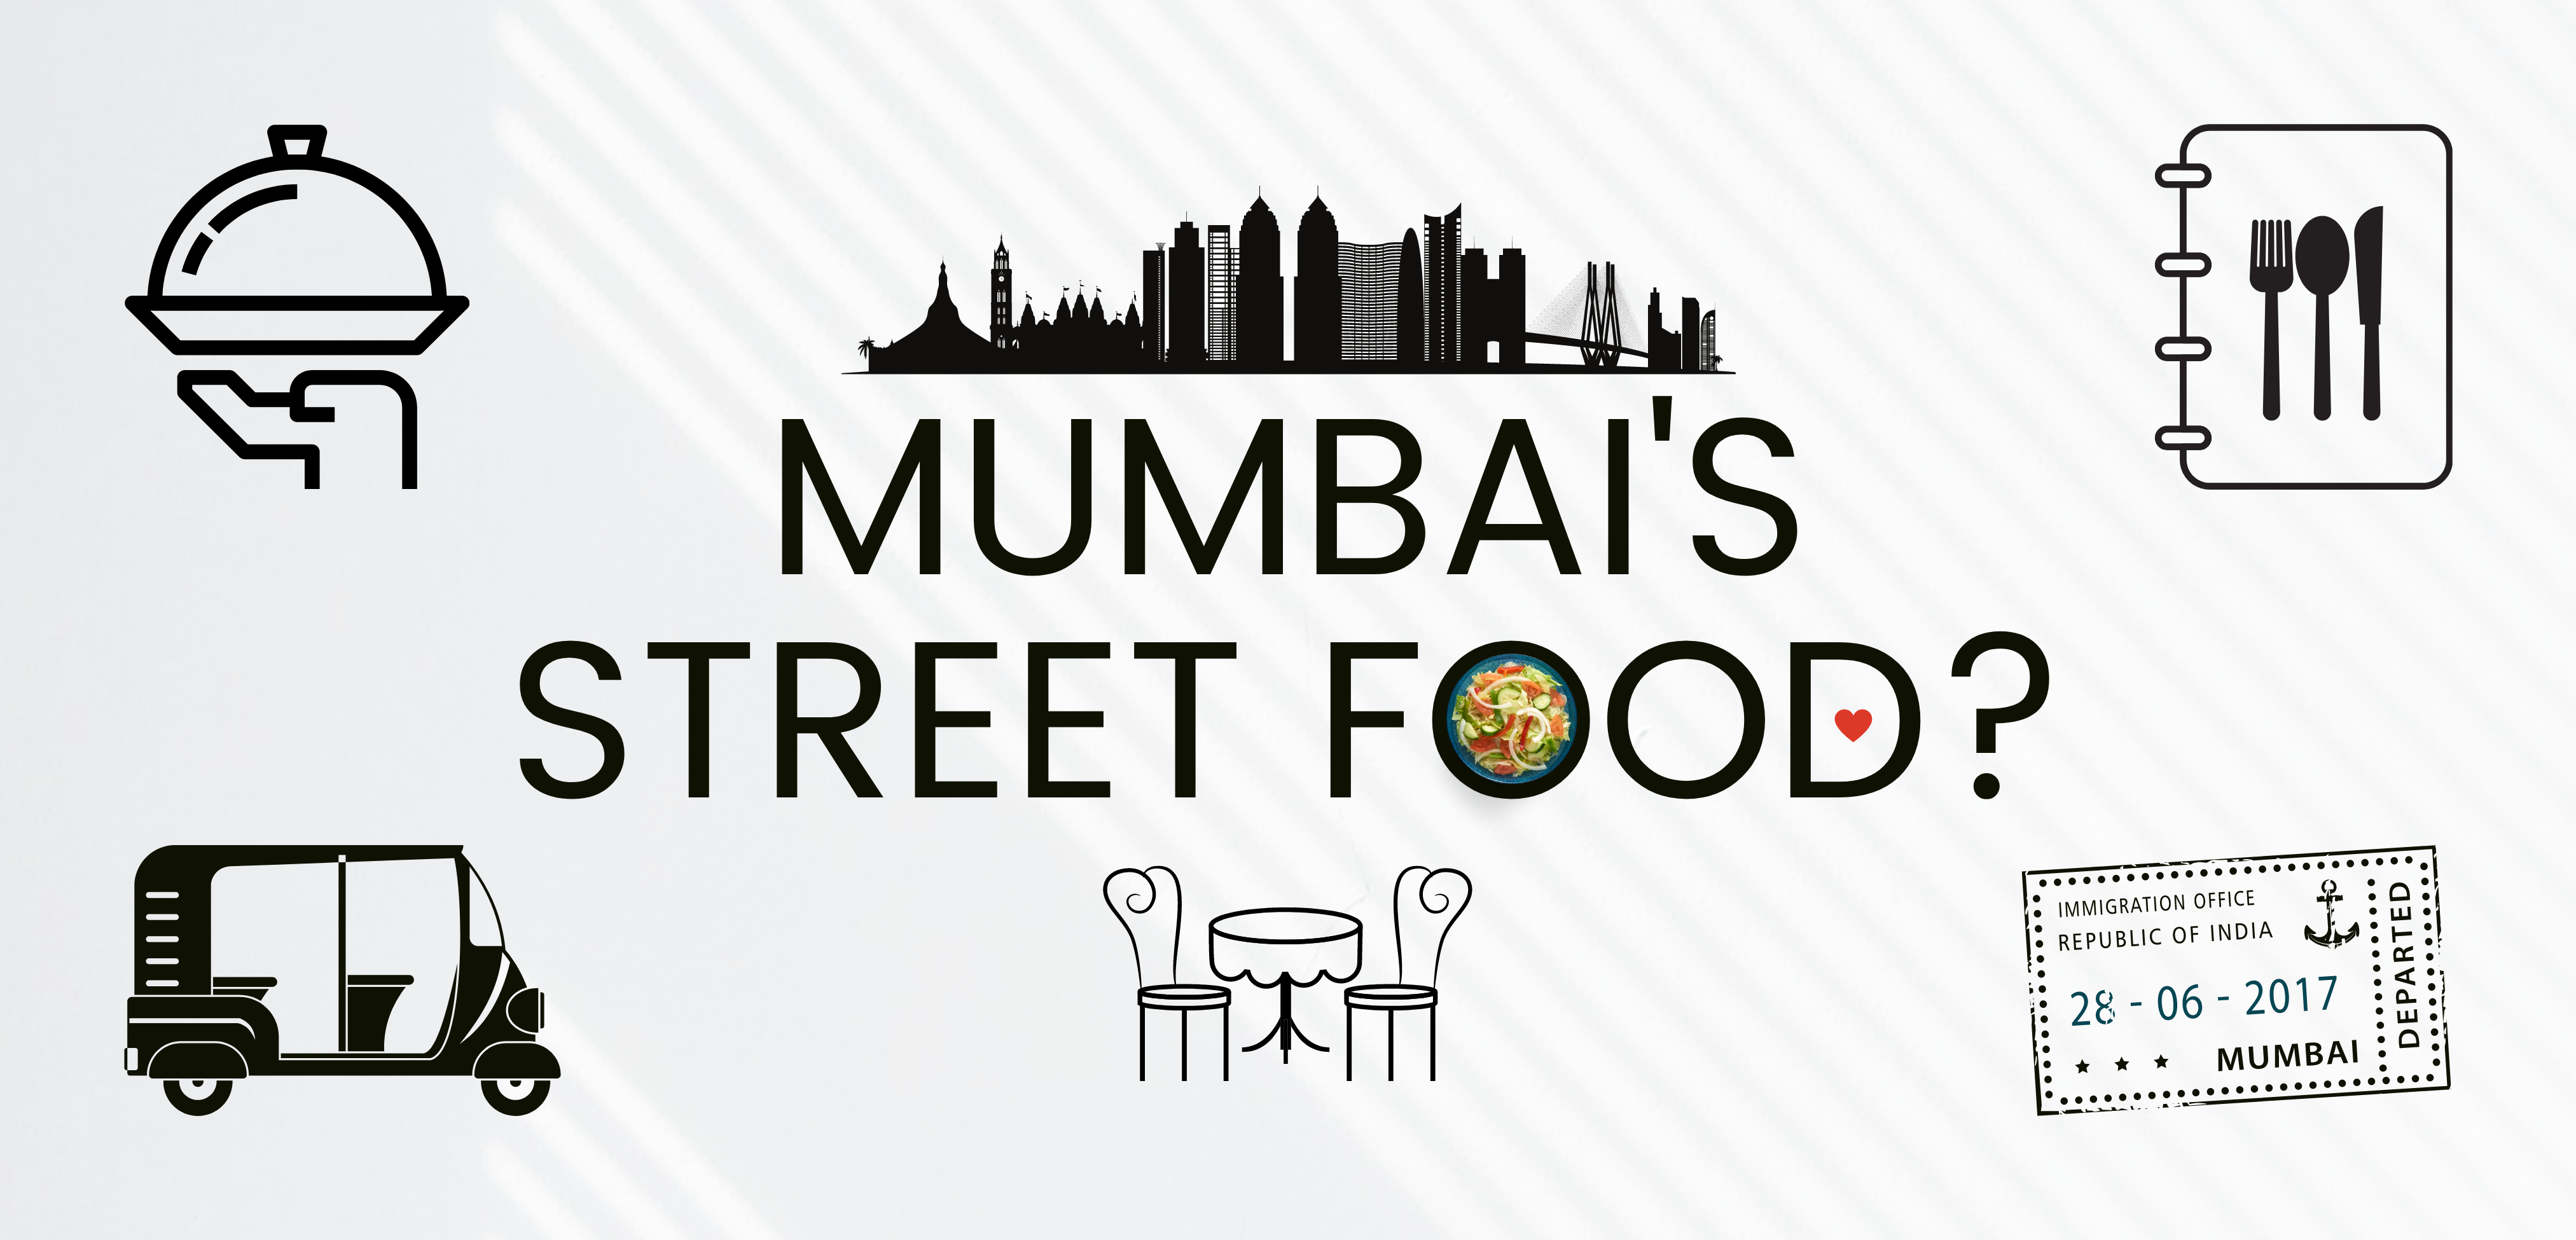 What's so special about Mumbai's street food